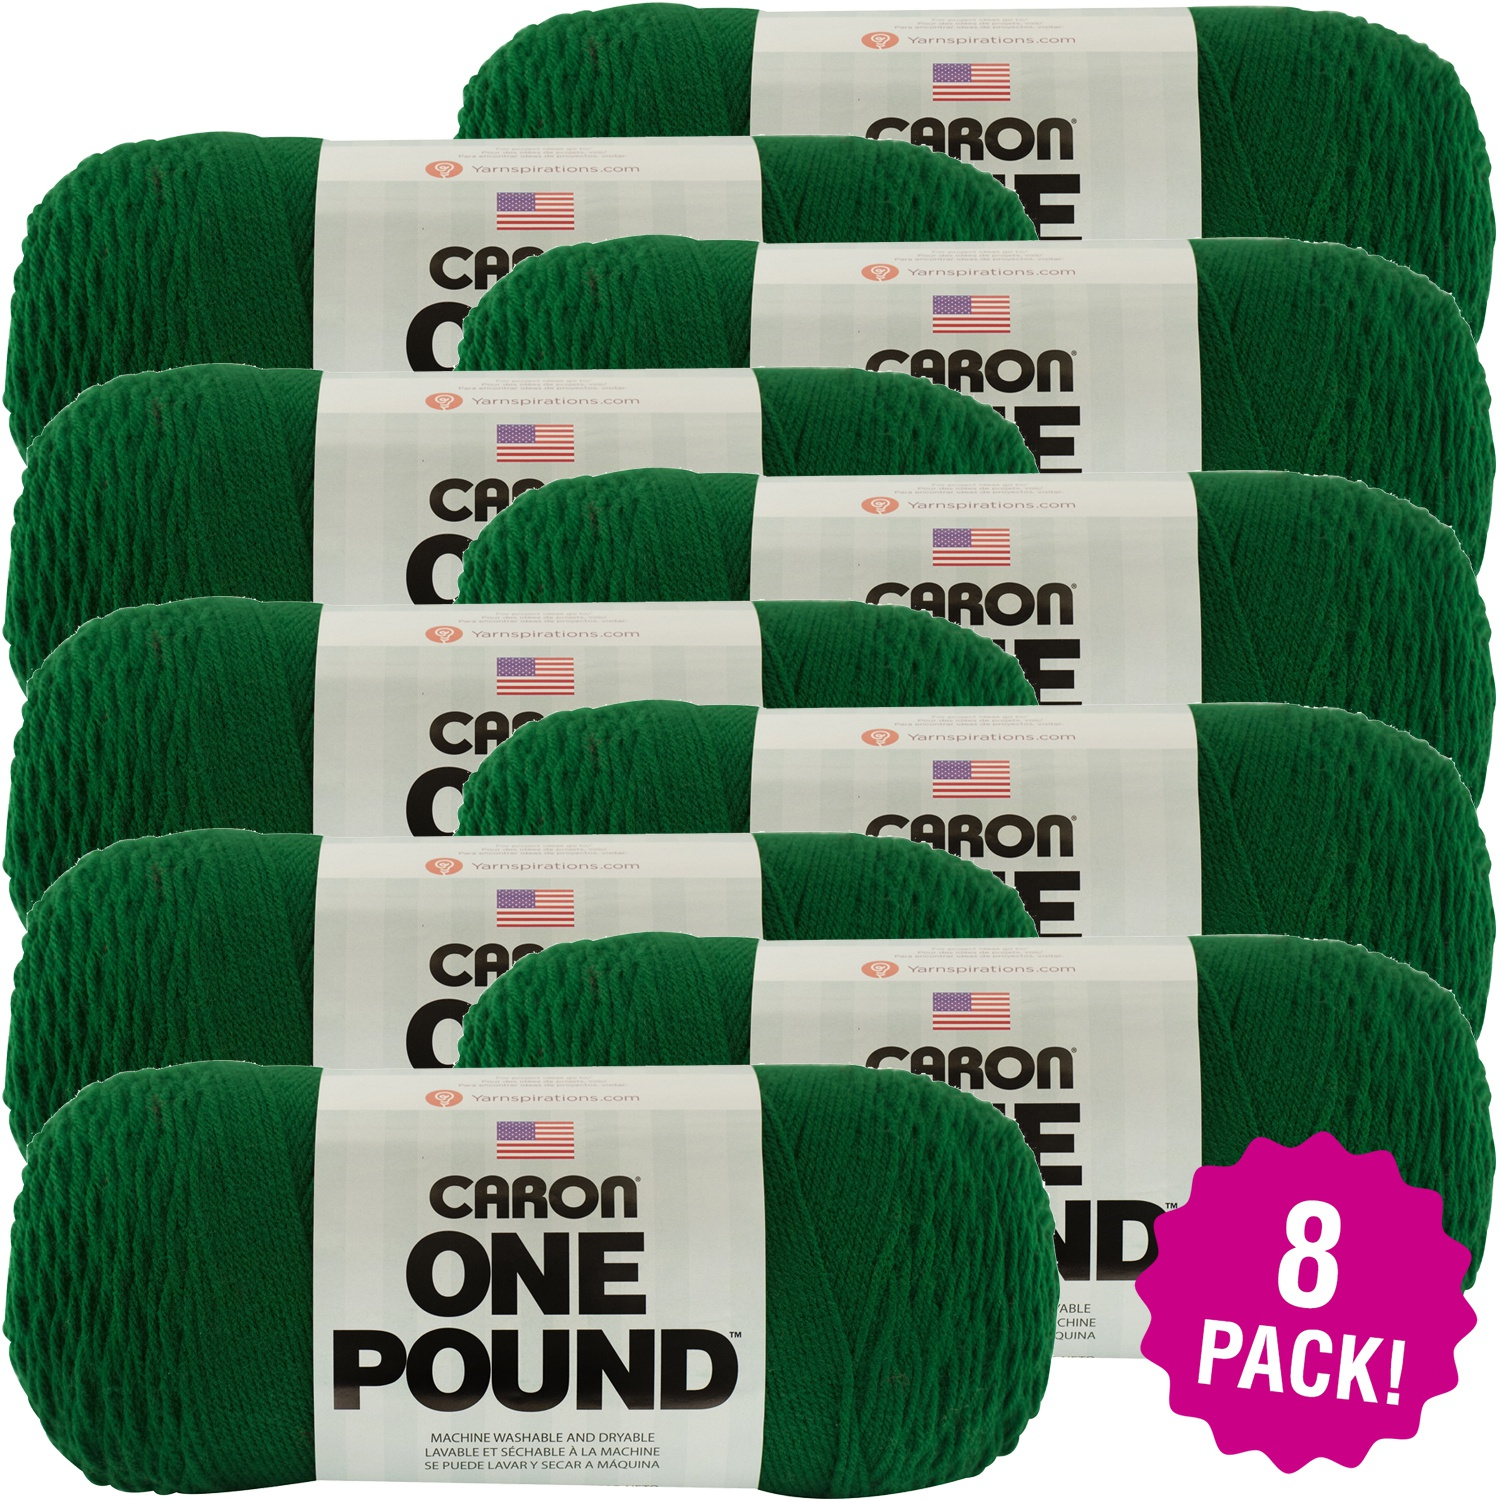 Caron One Pound Yarn - Kelly Green, Multipack of 8